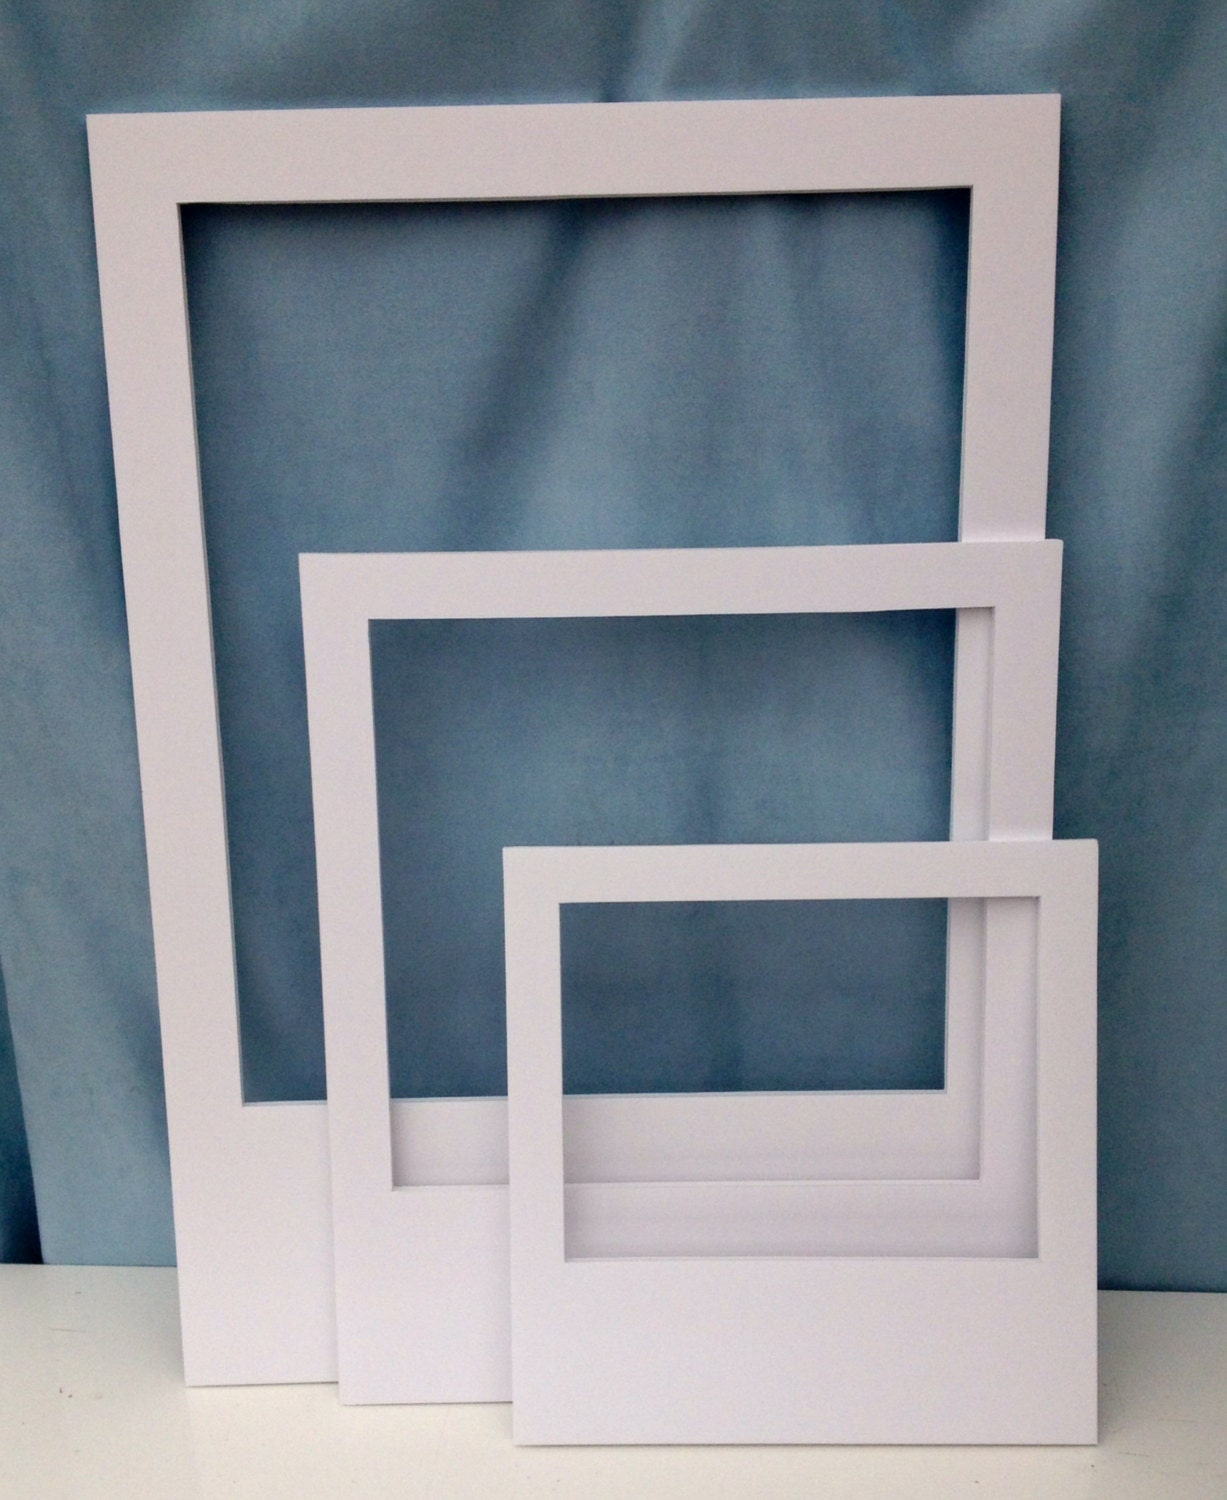 Set Of 3 Plain Polaroid Photo Booth Prop Frames By InstaFrameUK